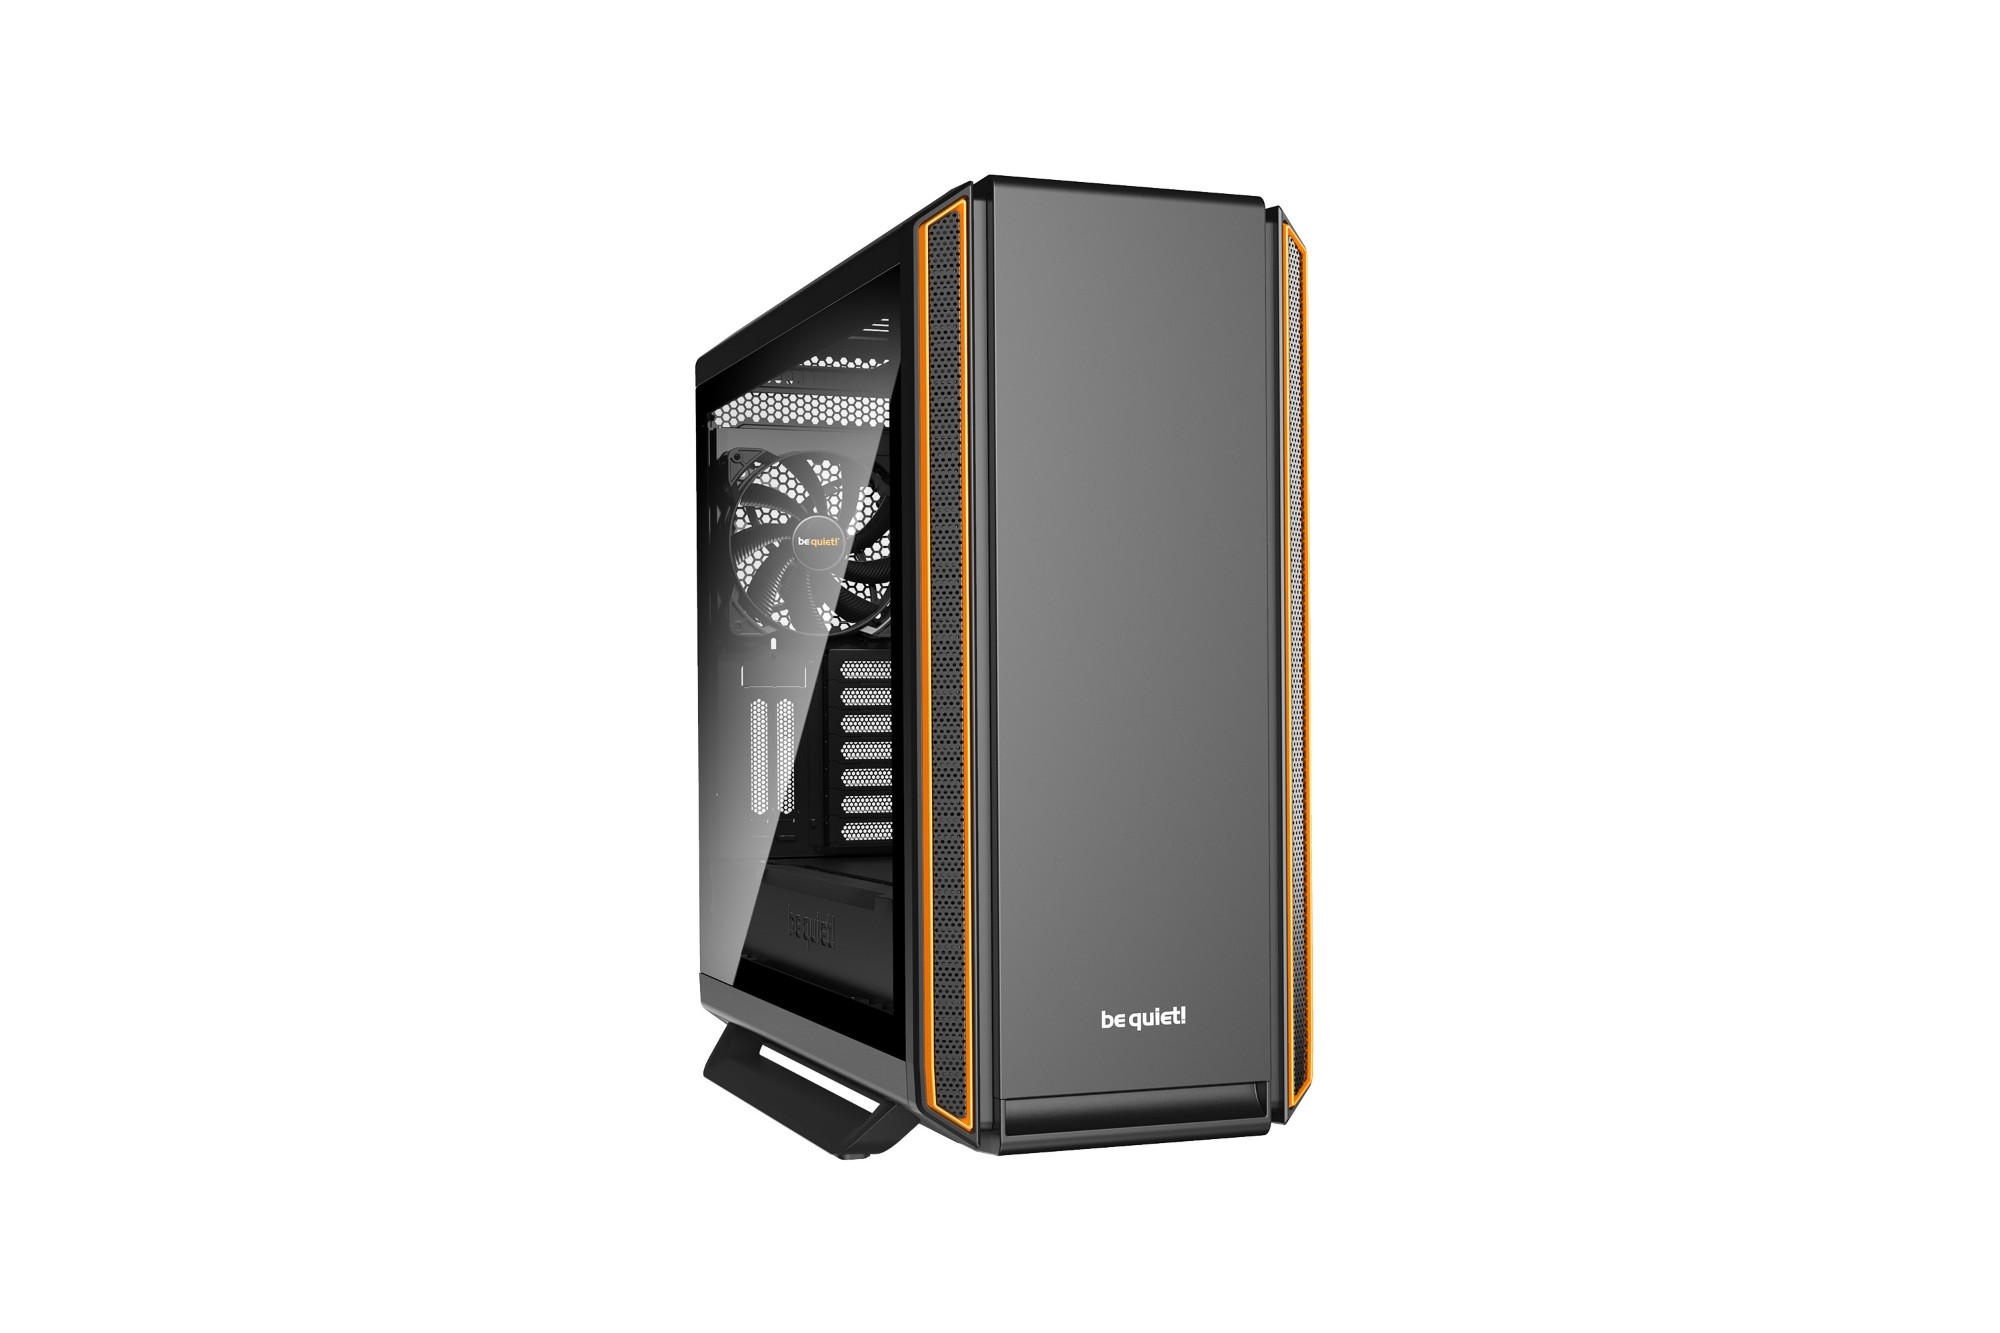 BE QUIET! BGW28 SILENT BASE 801 WINDOW COMPUTER CASE MIDI-TOWER BLACK, ORANGE